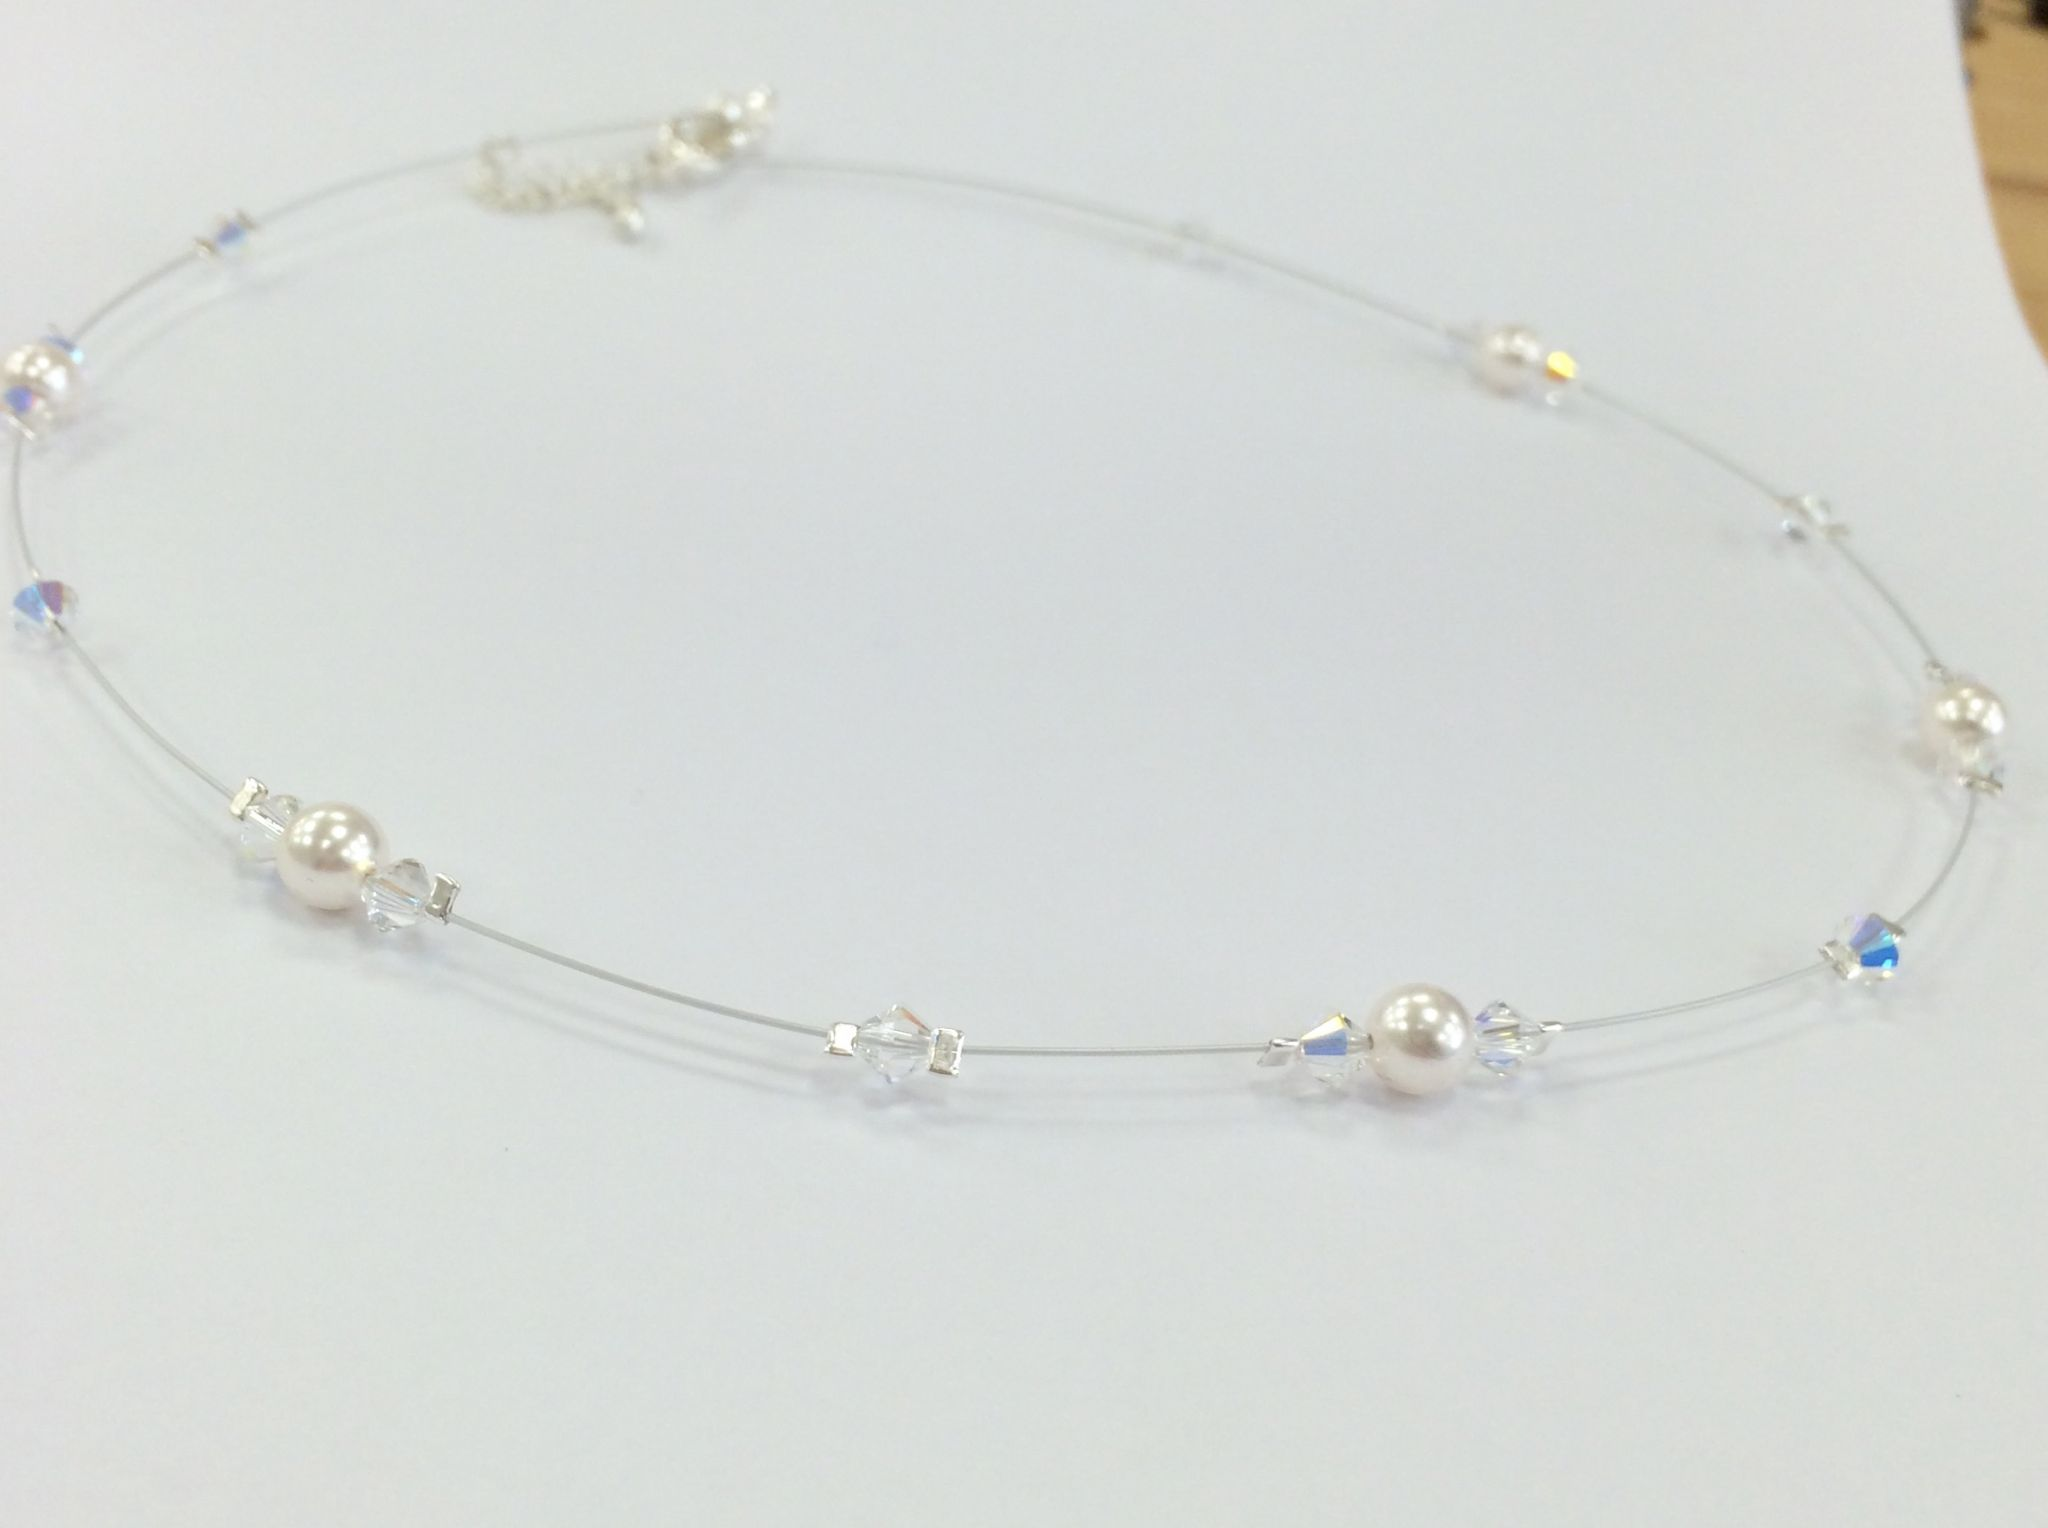 Swarovski Elements Floating Crystal And Pearl Necklace